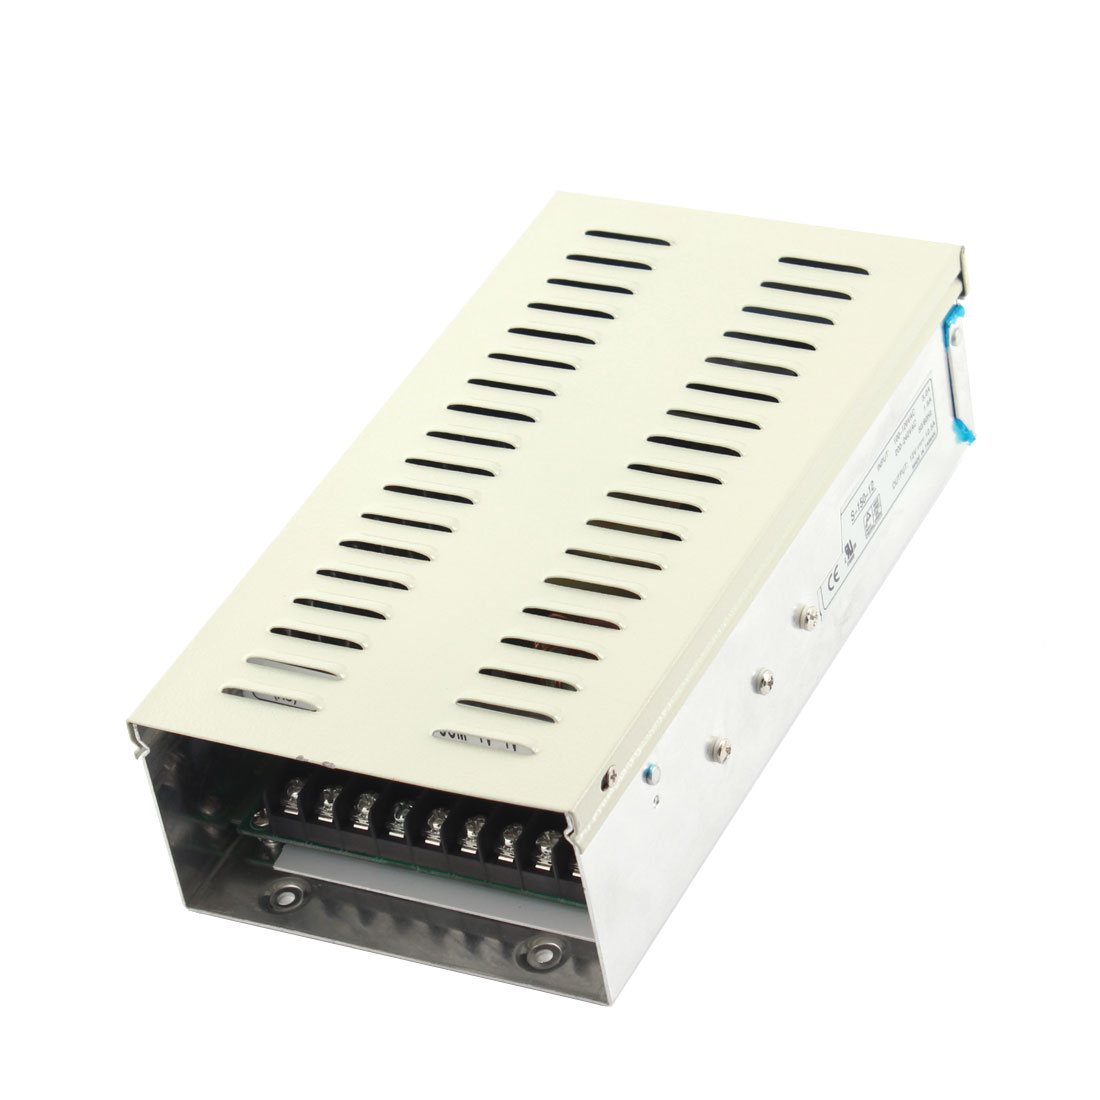 Switching Power Supply Regulated AC 100-120V 7A to DC 12V 12.5A for LED Light